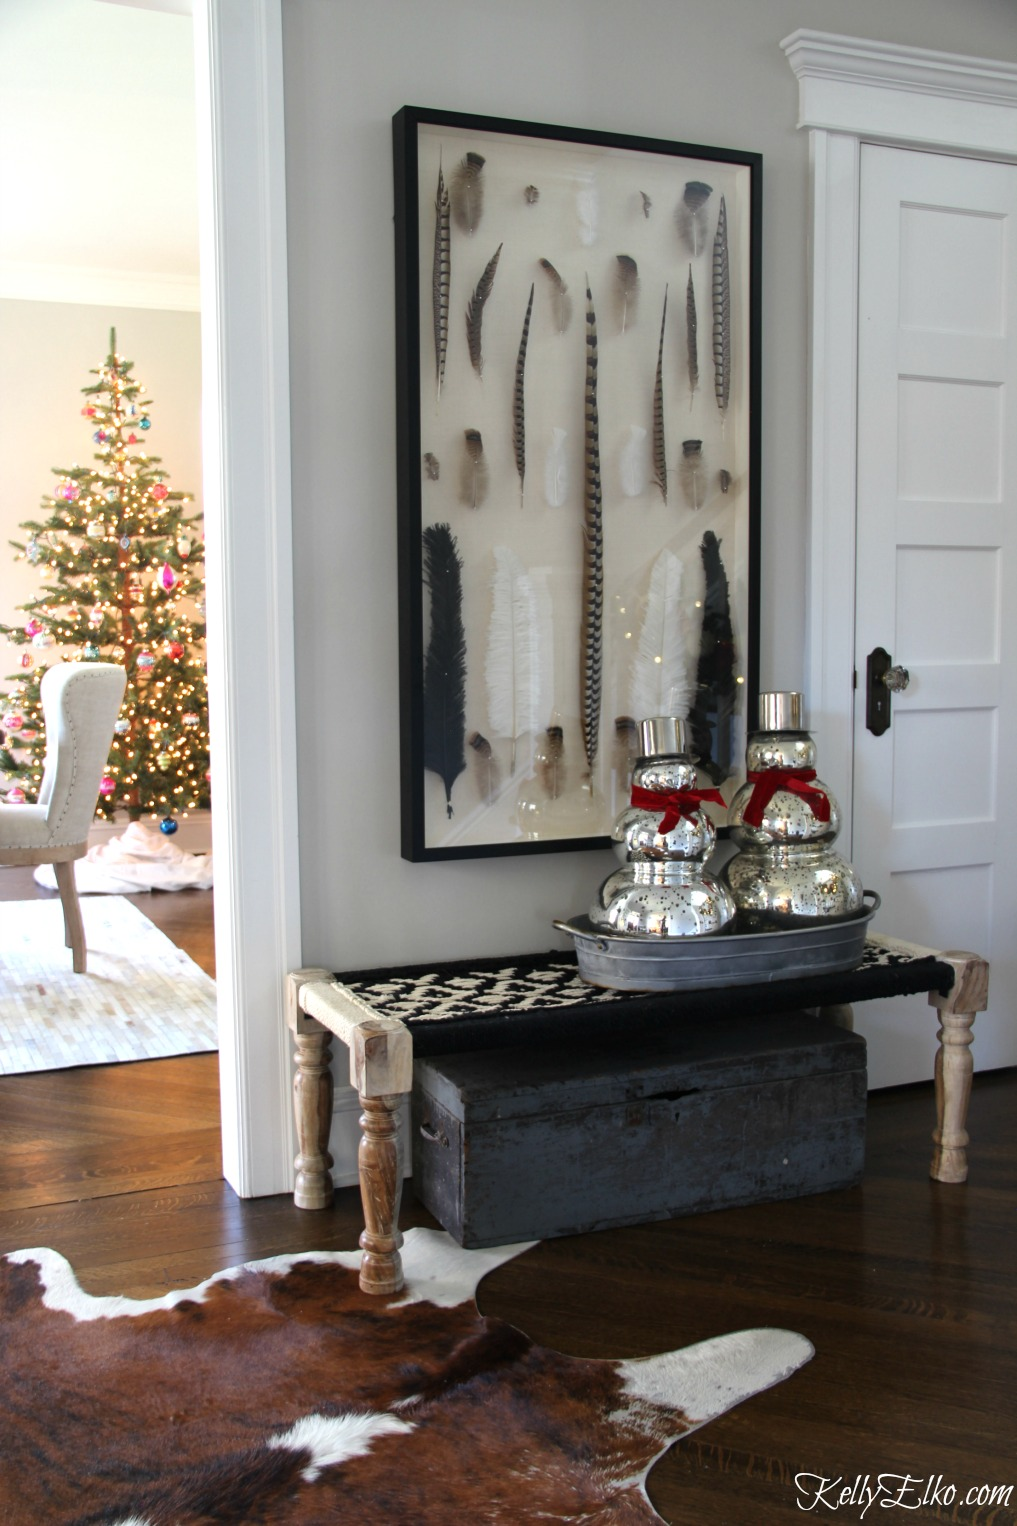 Christmas Home Tour - love this festive foyer with mercury glass snowmen kellyelko.com